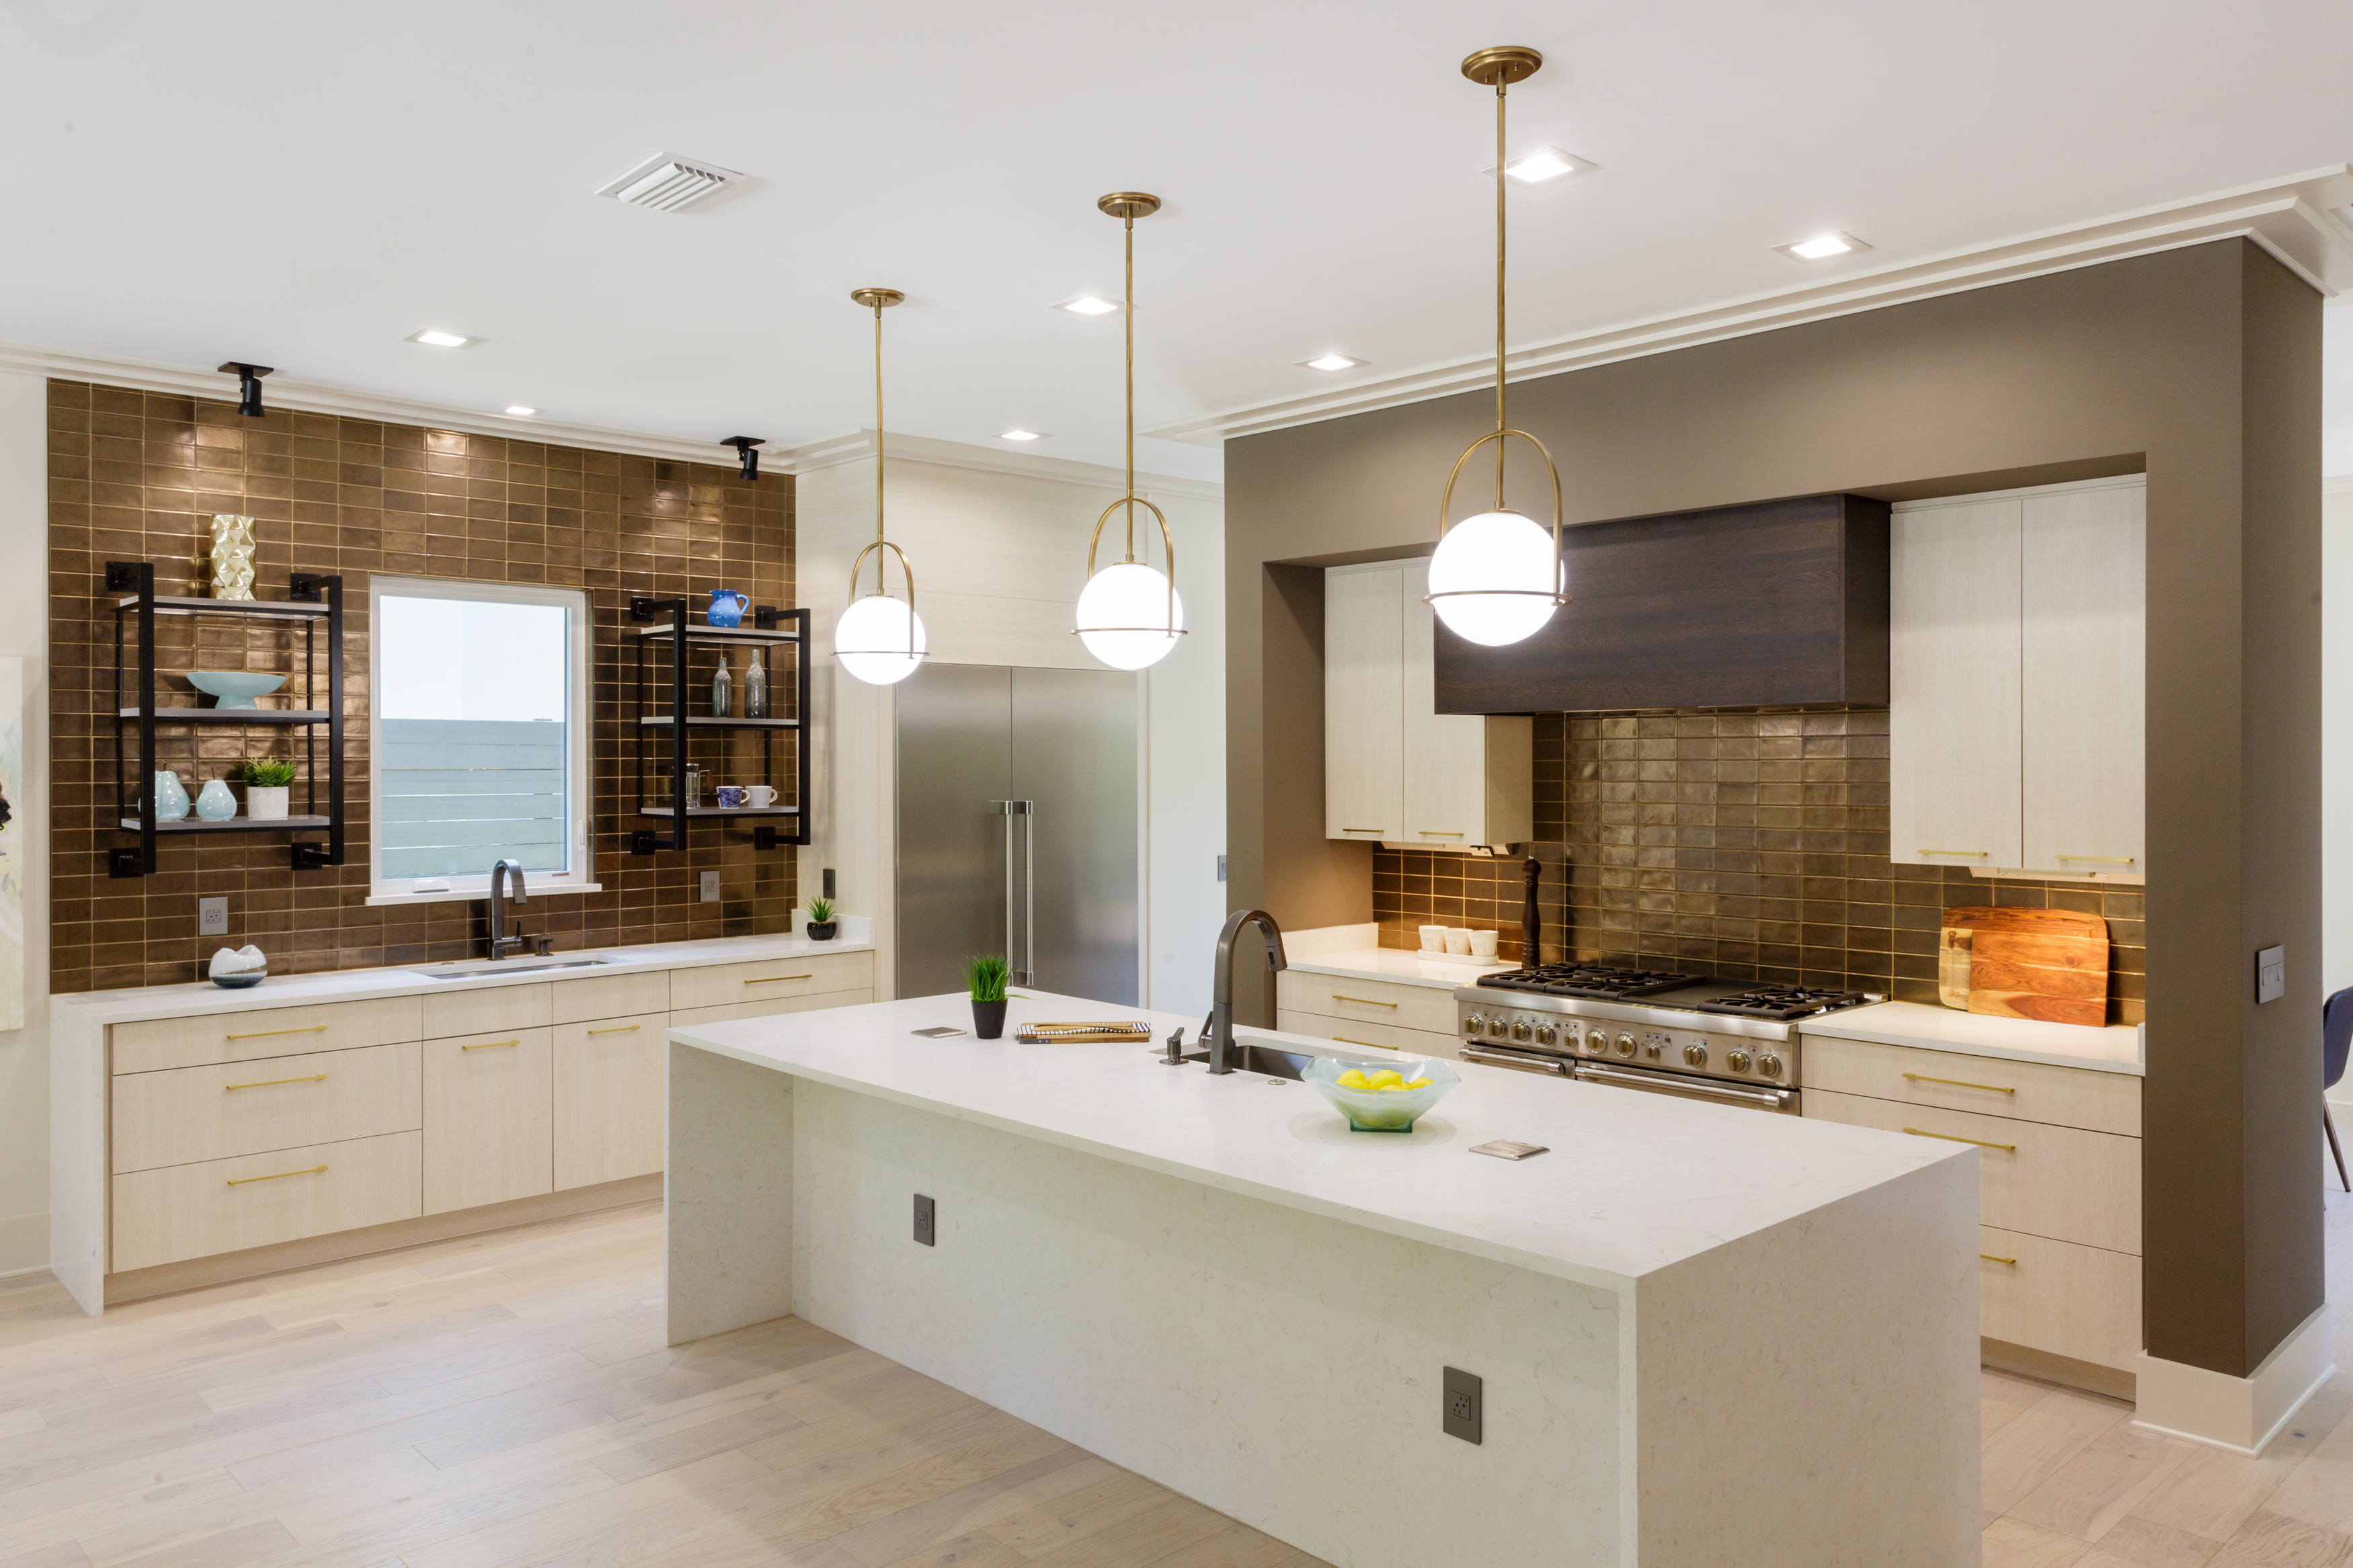 Grinnell Modern: Kitchen Island and Prep